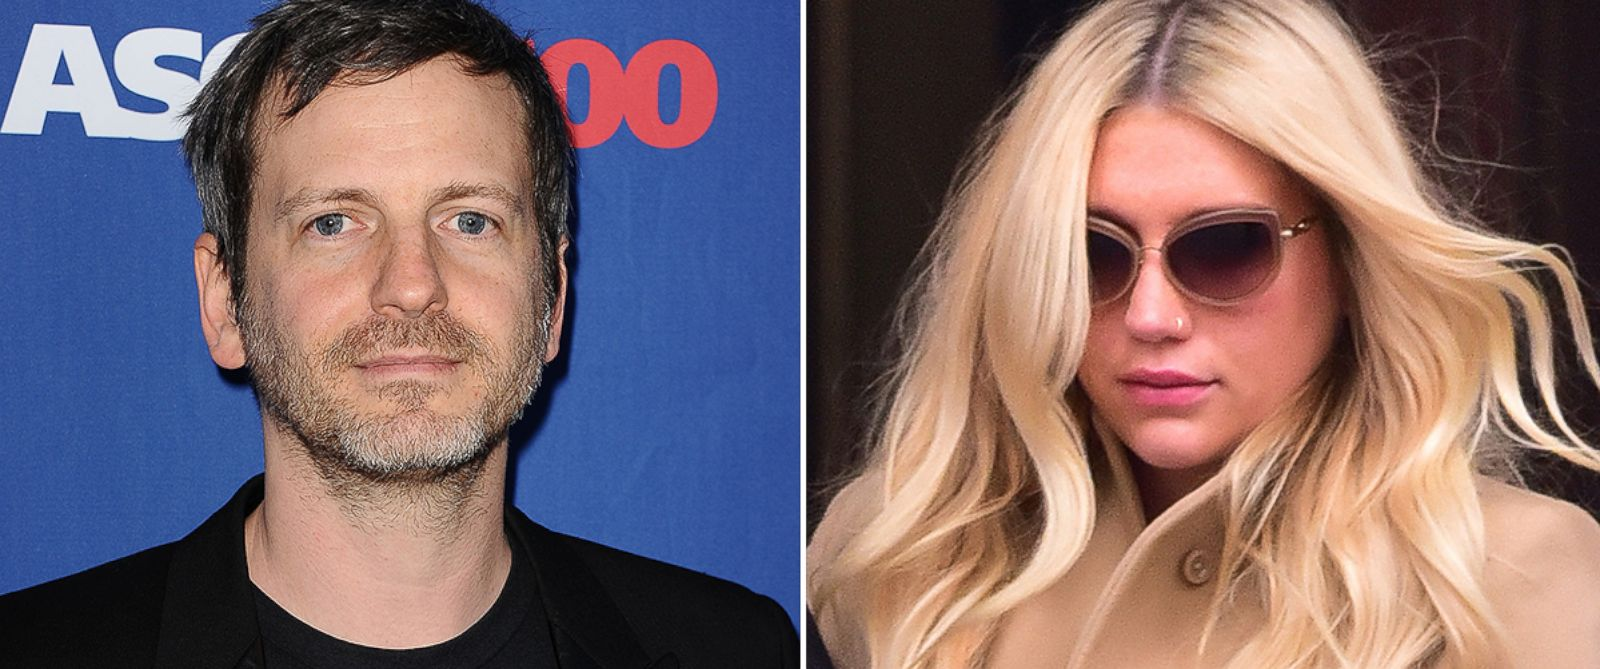 PHOTO: Sony has refused to voluntarily release Kesha, right, from her contract which requires her to make three more albums with producer Dr. Luke, a man she claims sexually assaulted her.